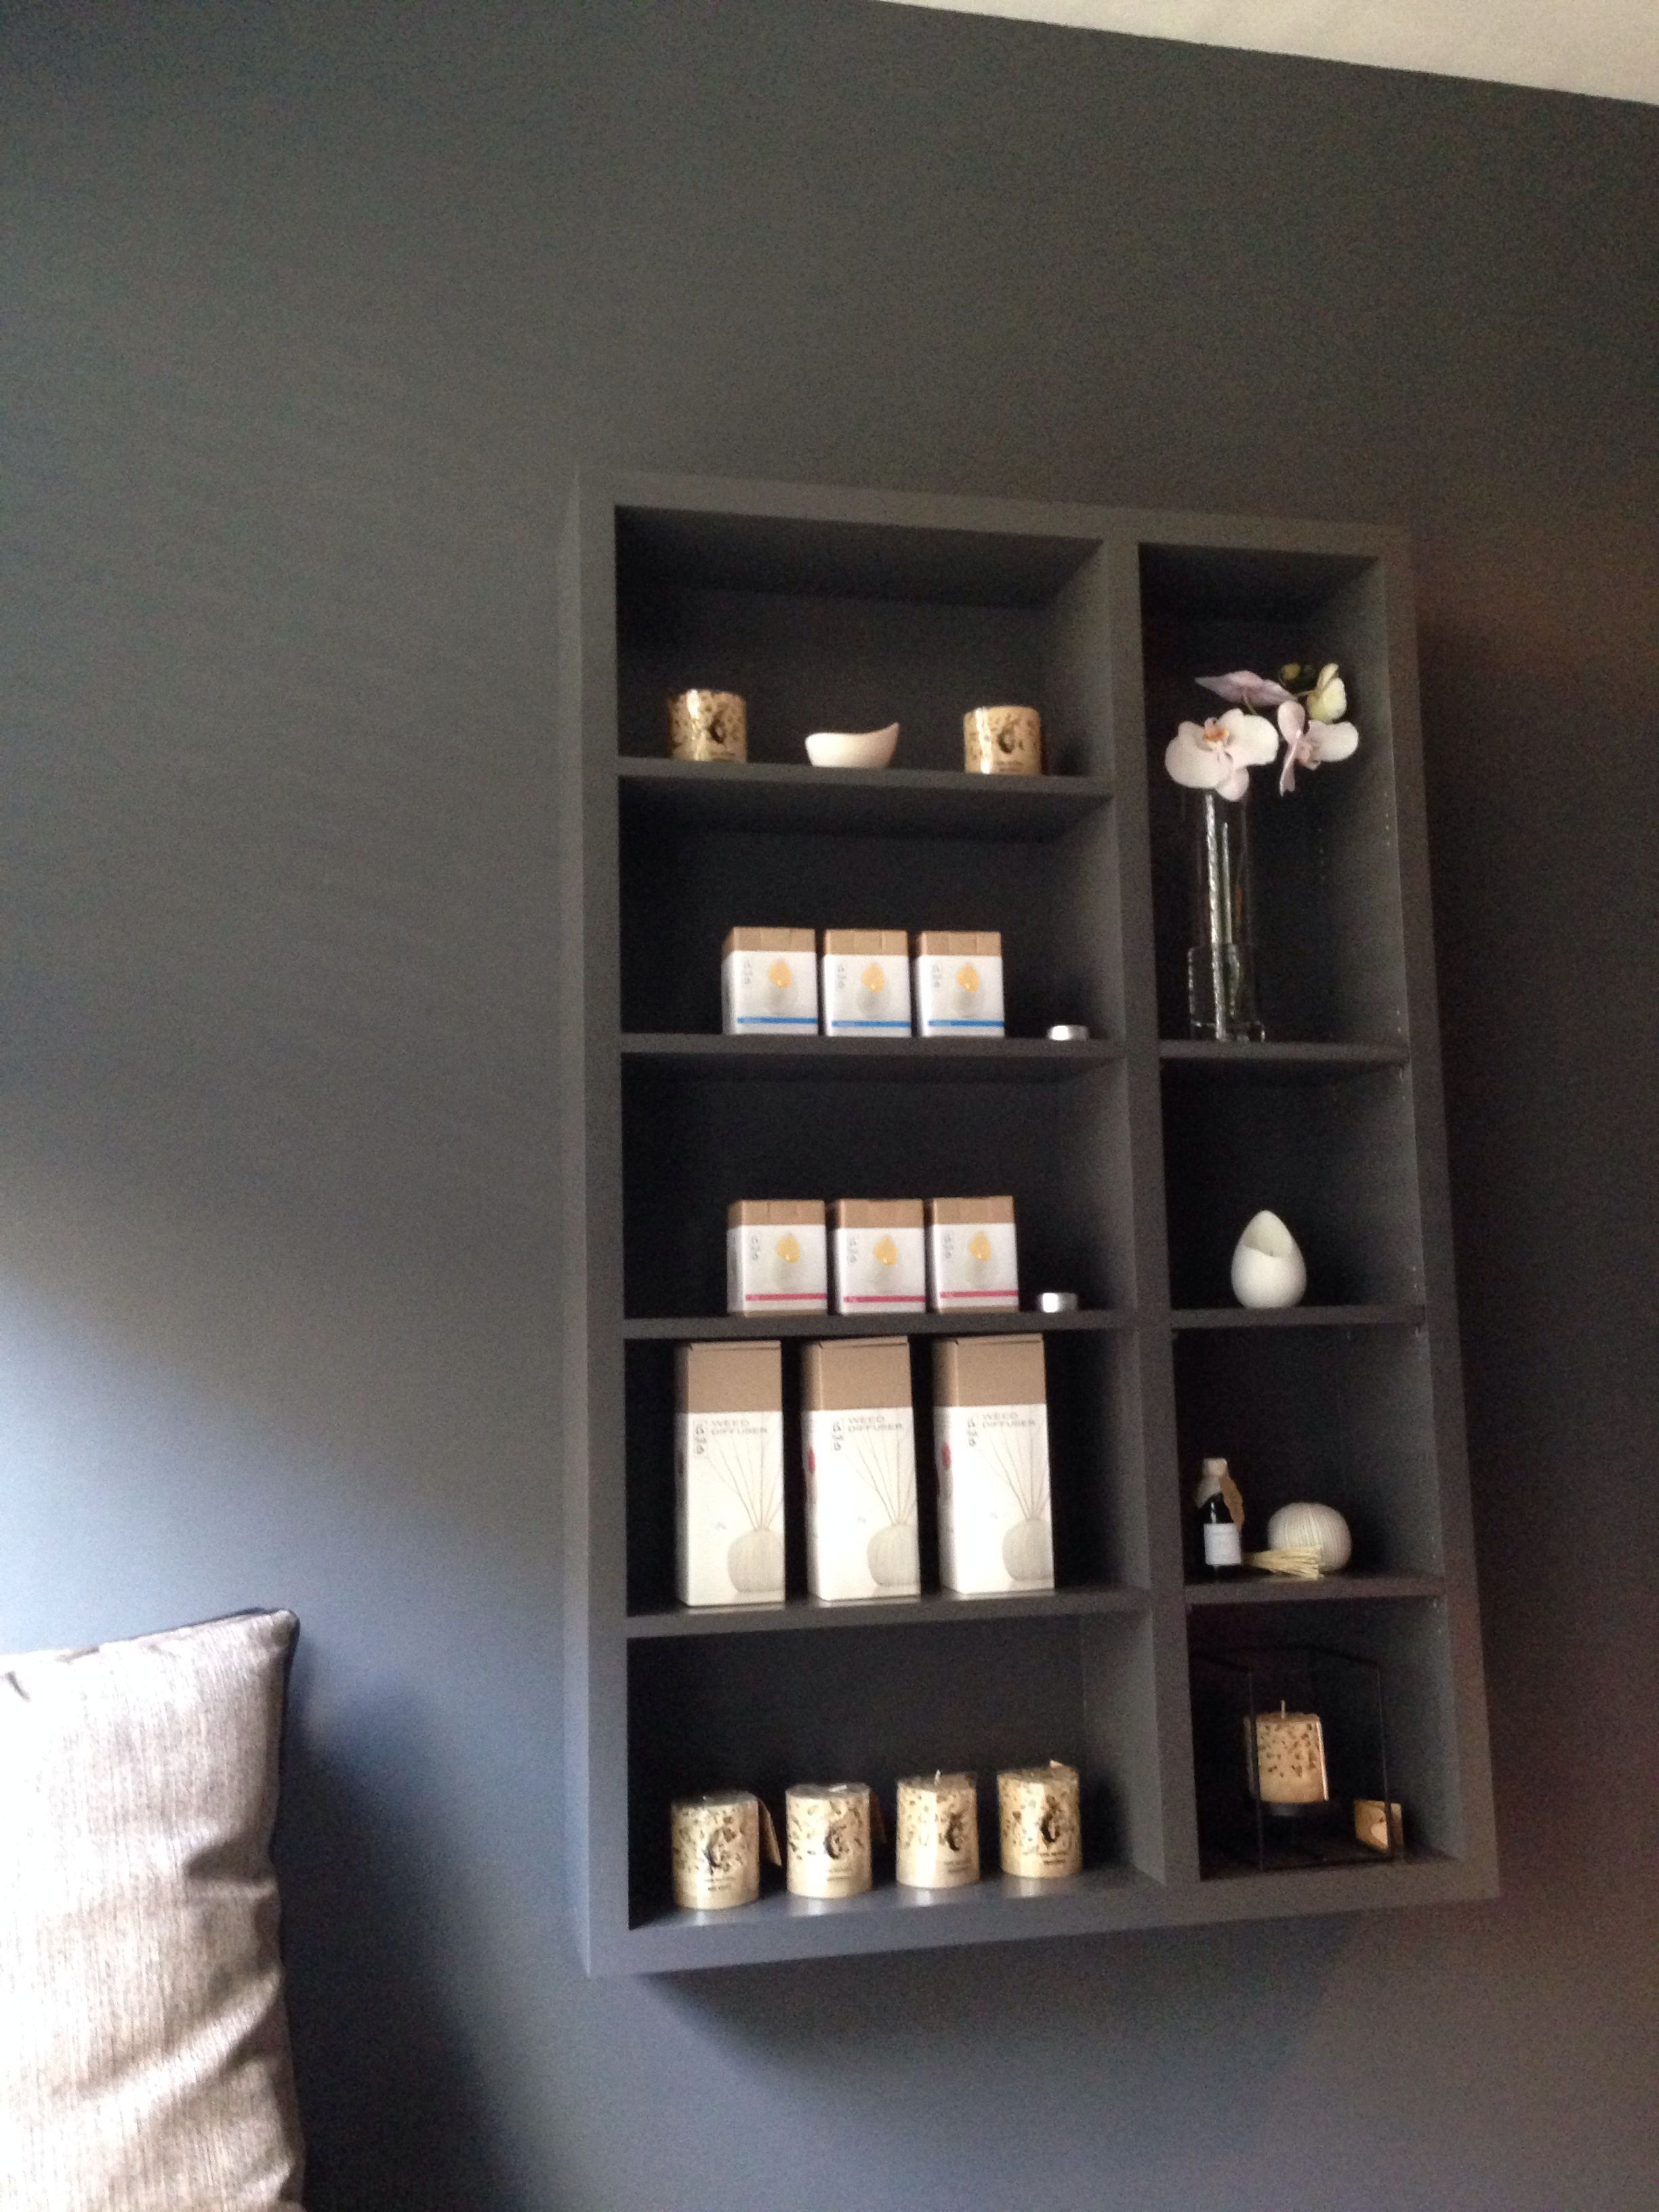 Corpus Rub Corpus Rub Szi Design Projects Pinterest Floating Shelves